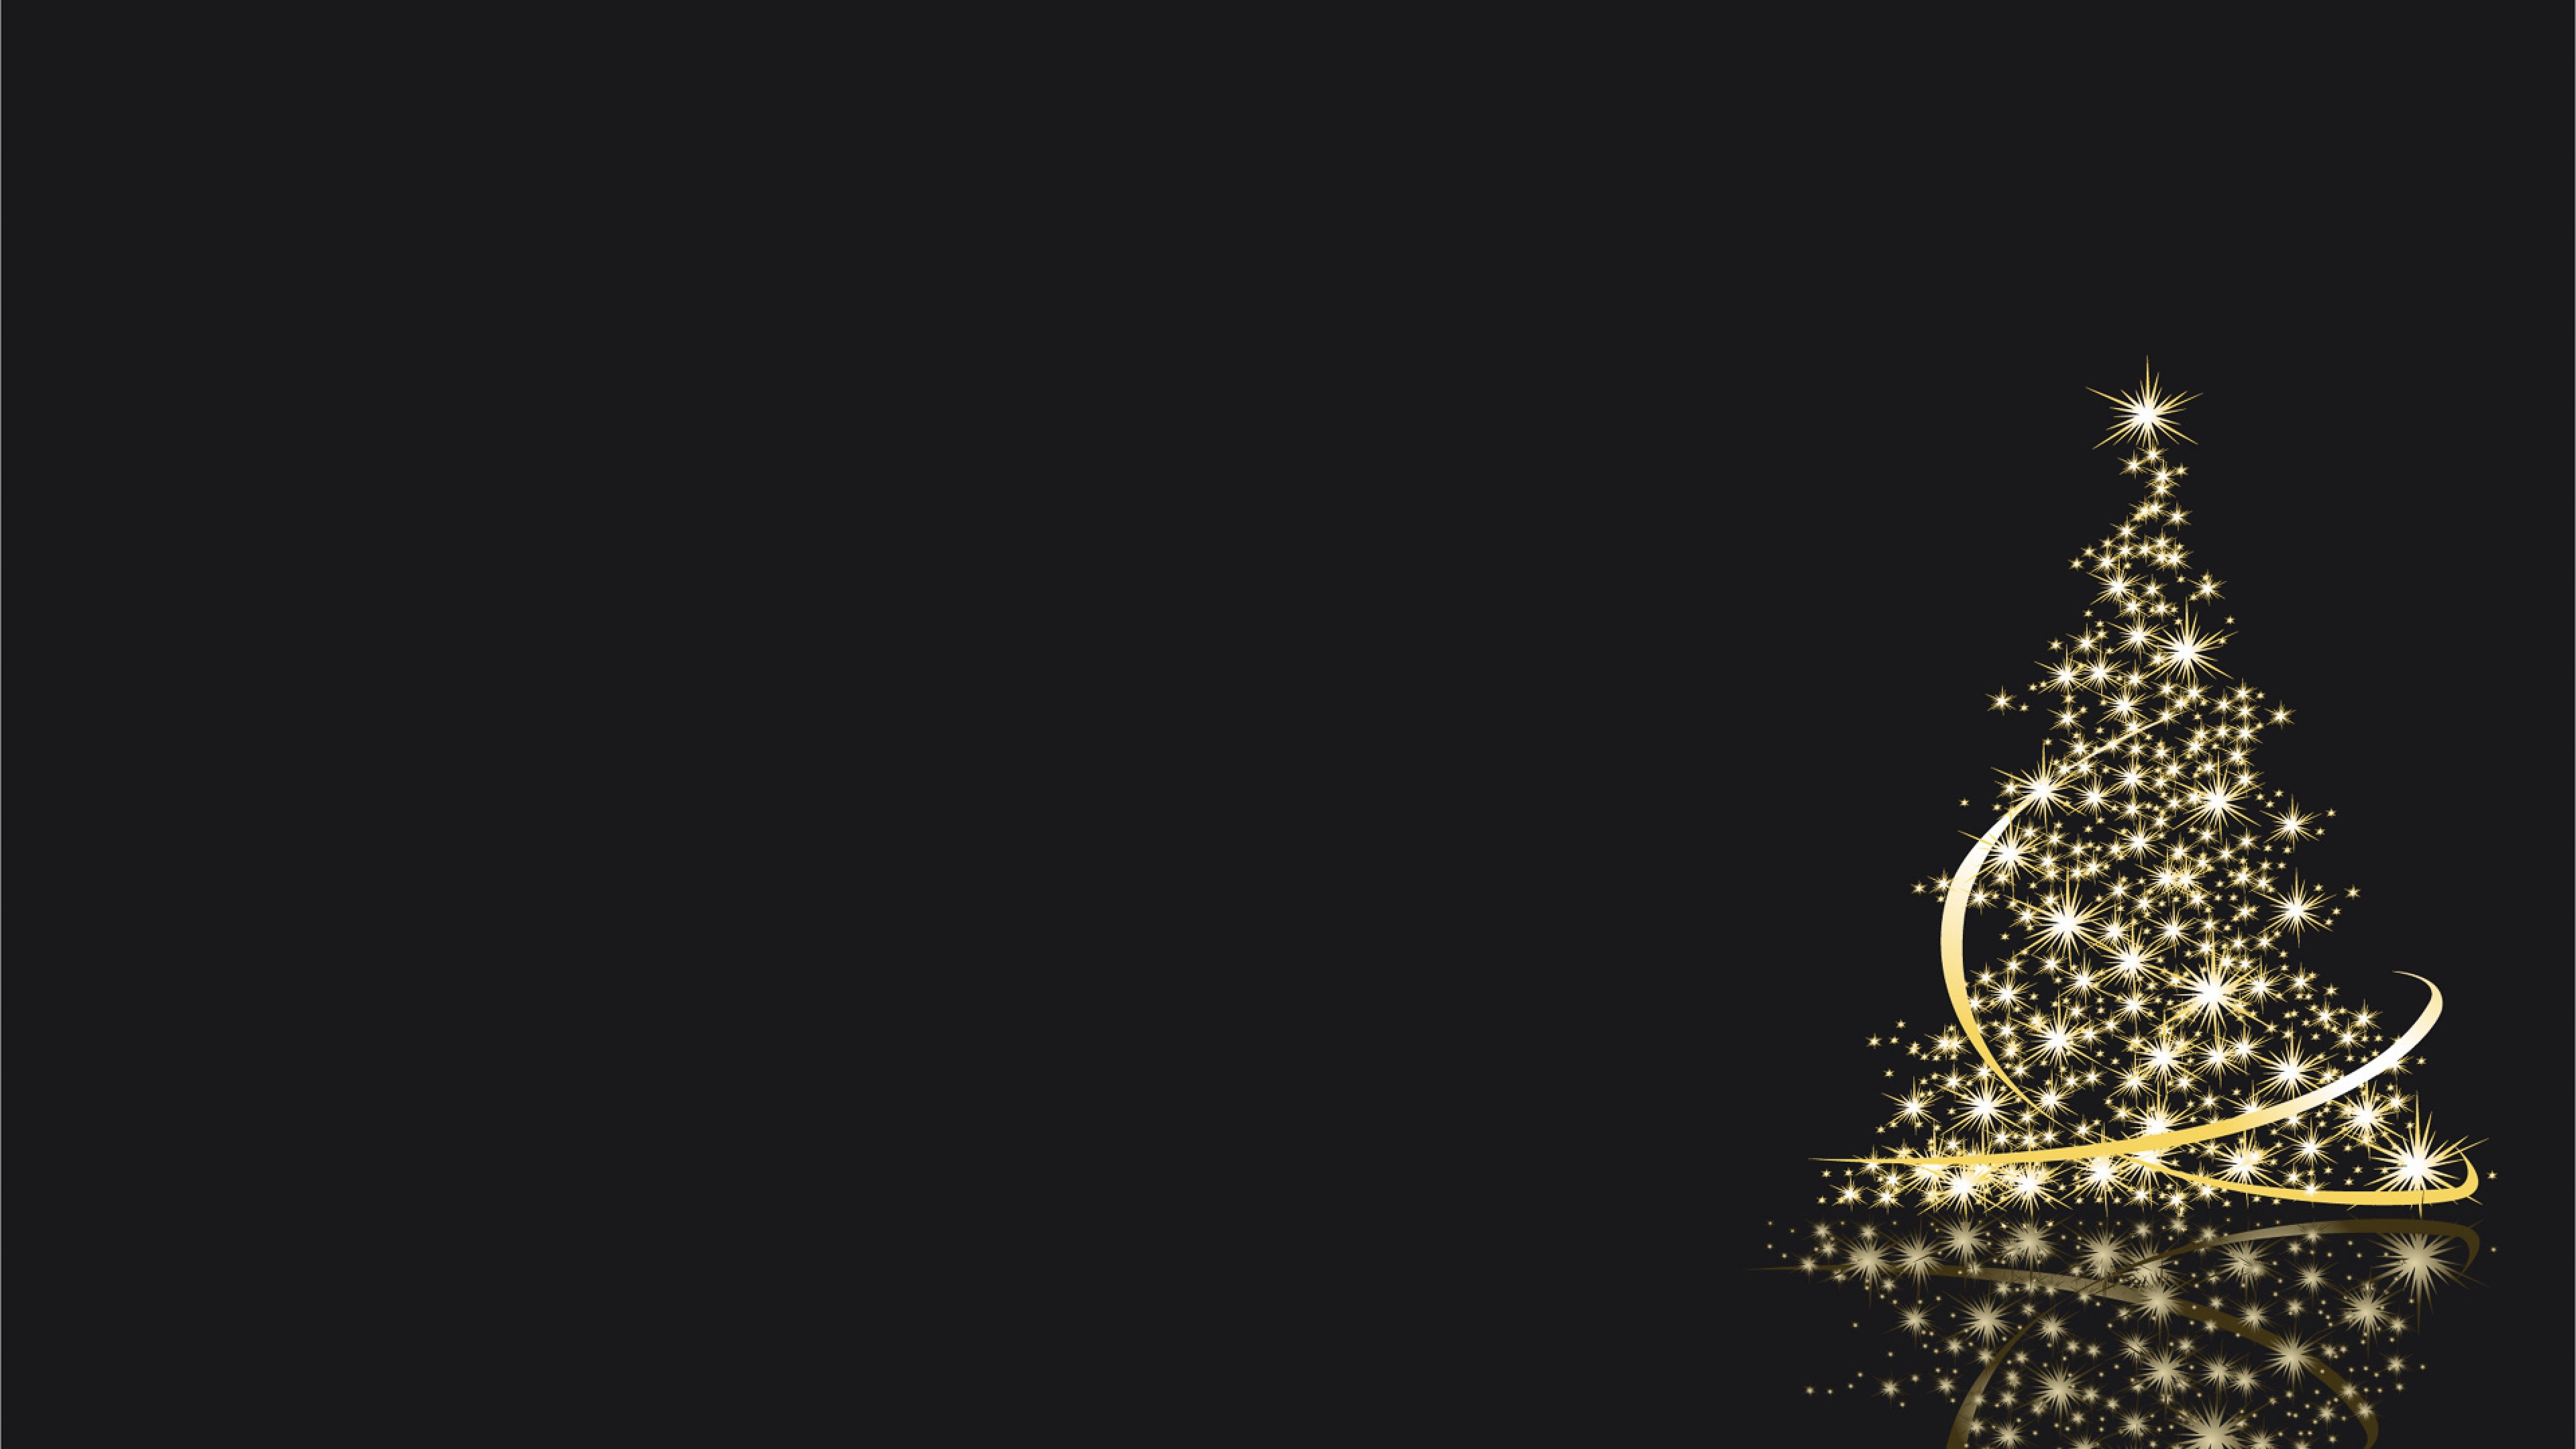 Download Top 10 4k Christmas Wallpapers 2015 Axeetech